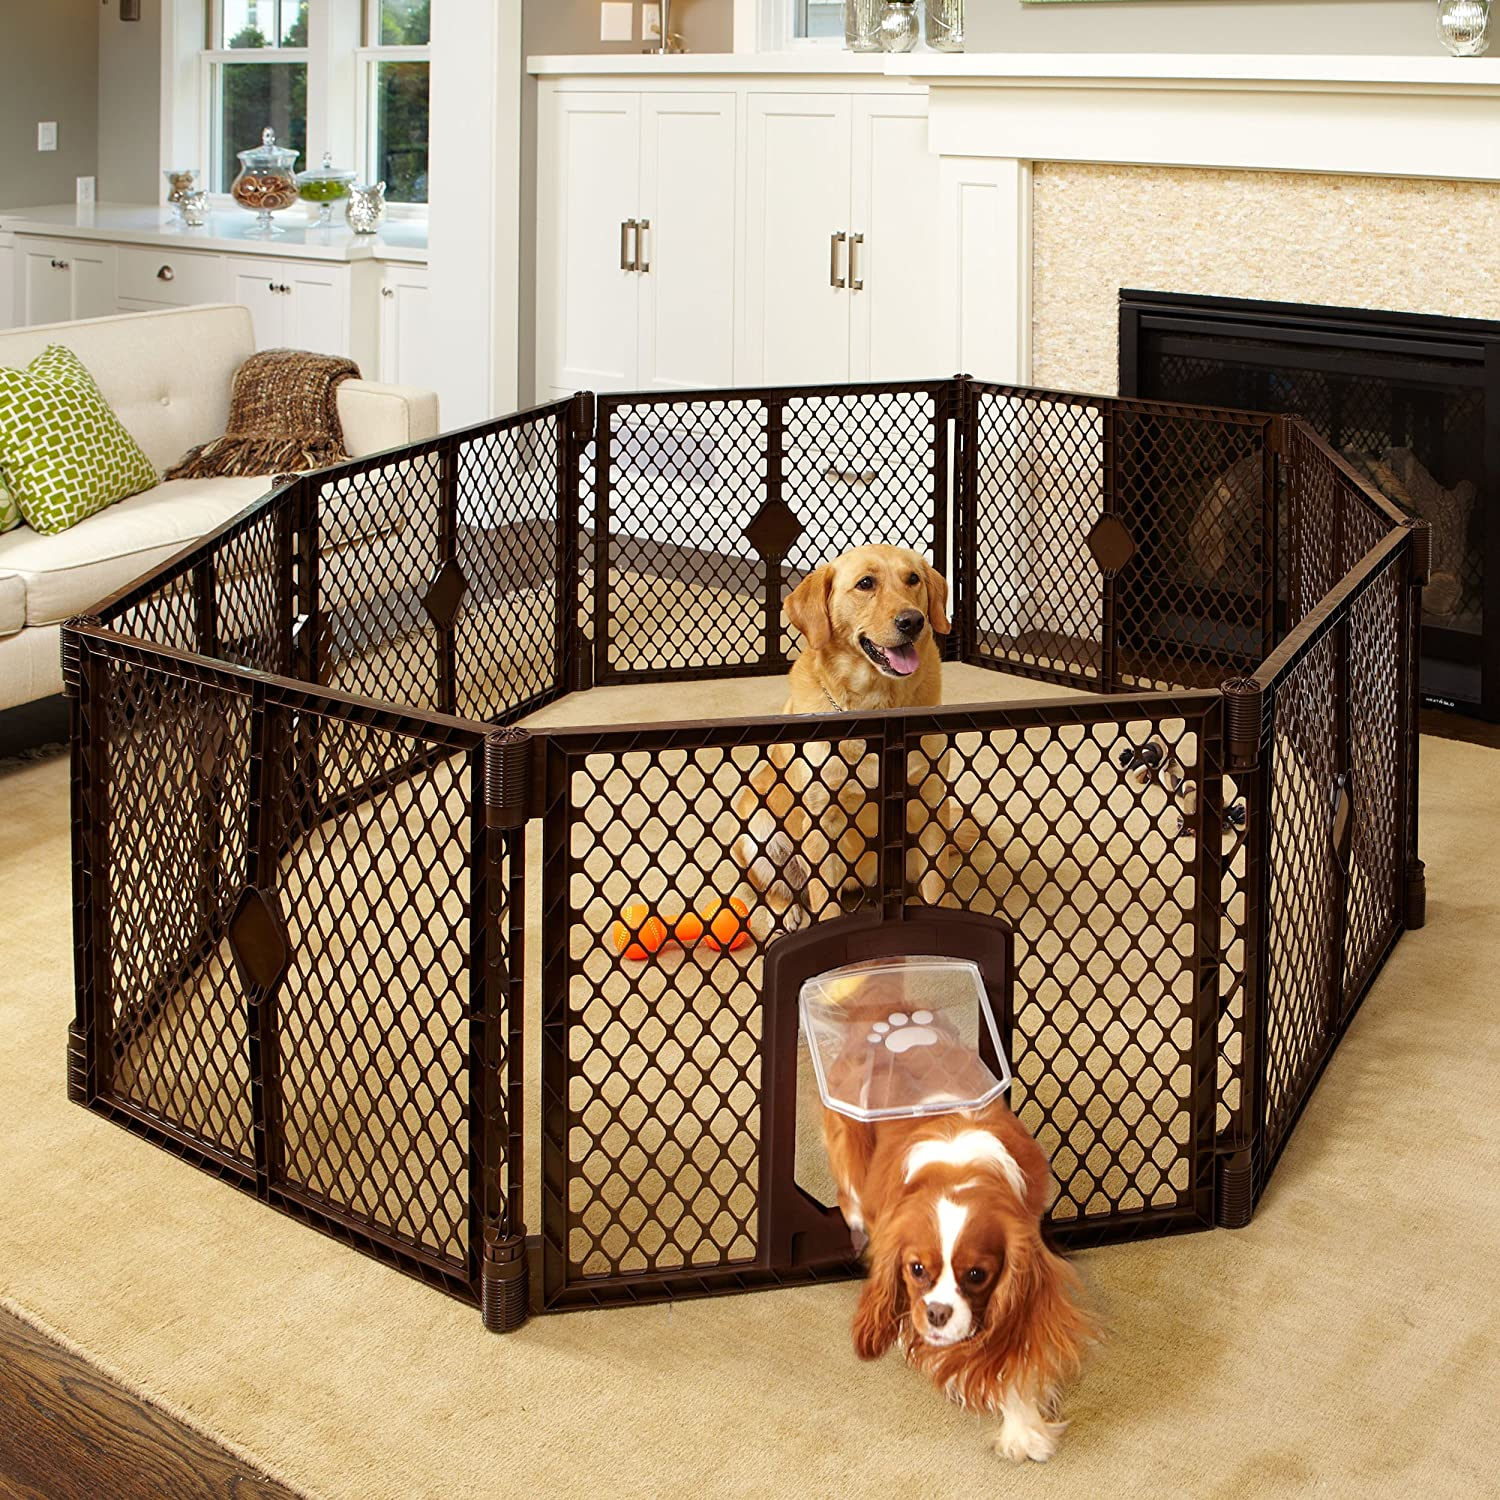 Do you need a puppy playpen